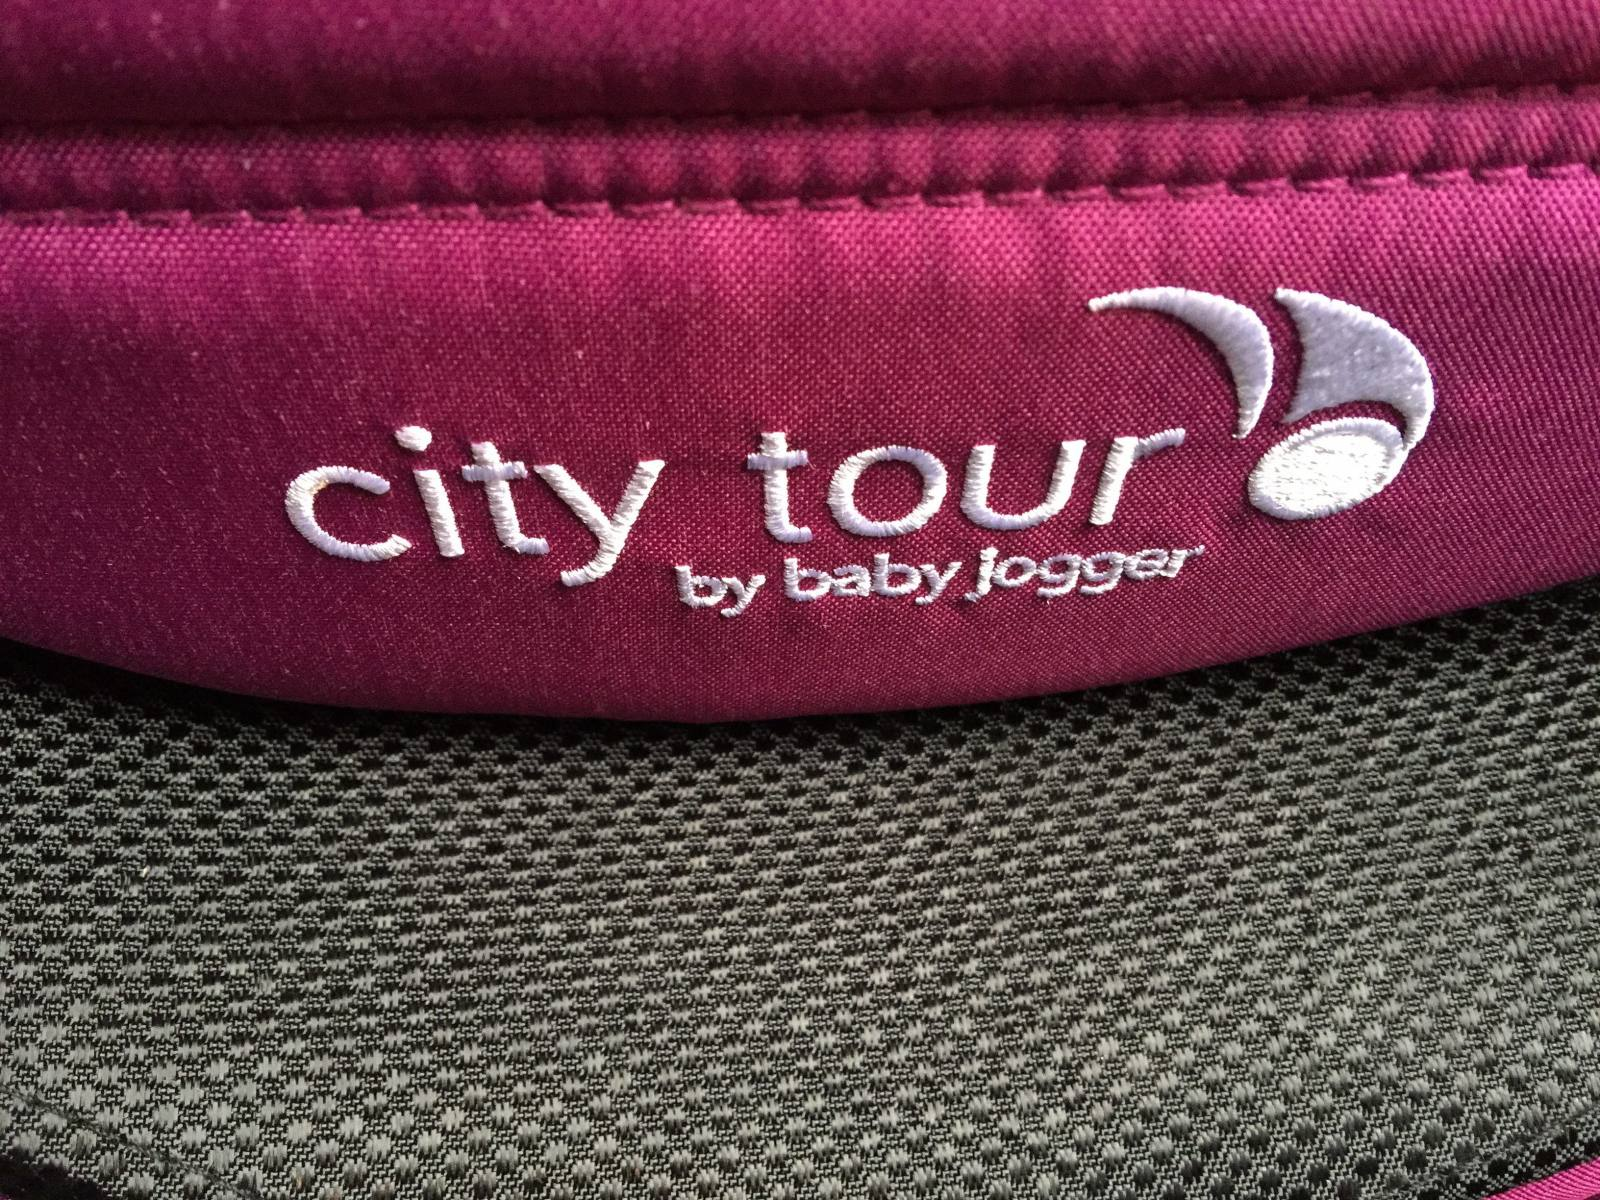 baby jogger city tour footrest